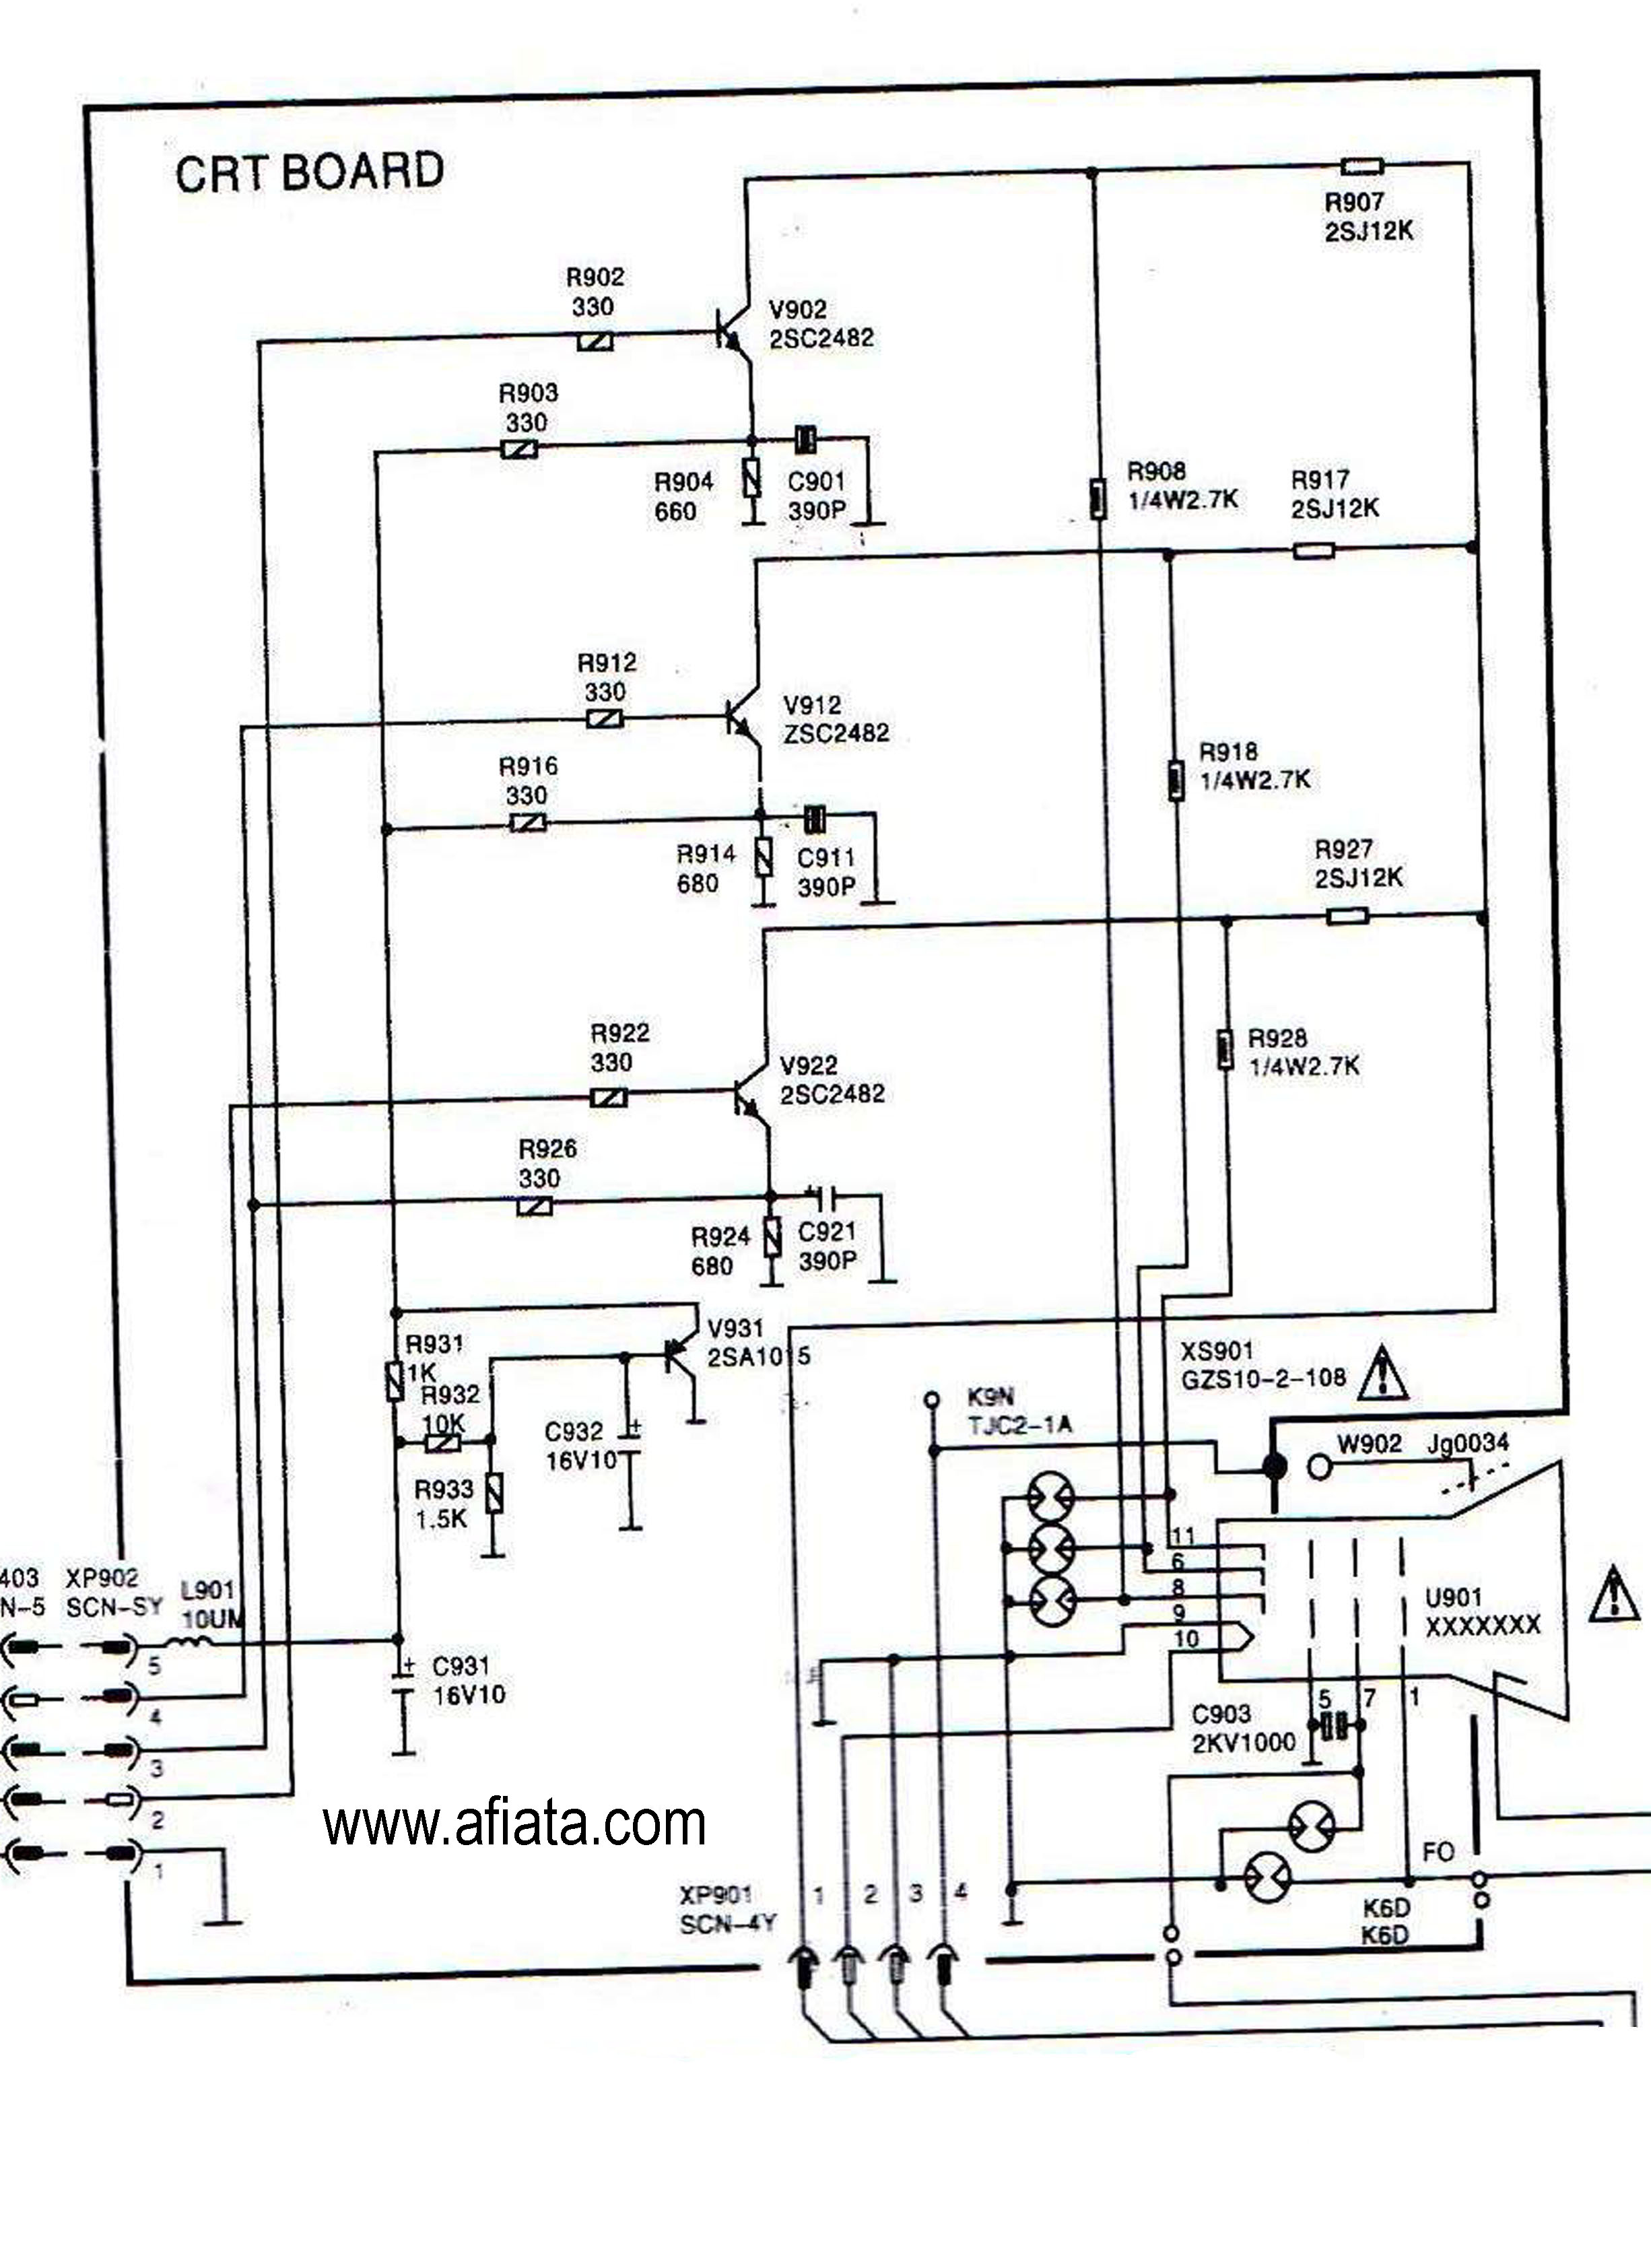 Tv Schematic Diagrams Free Download Wiring Diagram Libraries Crt Monitor Pictures Television Rca Get Image About Diagramcrt